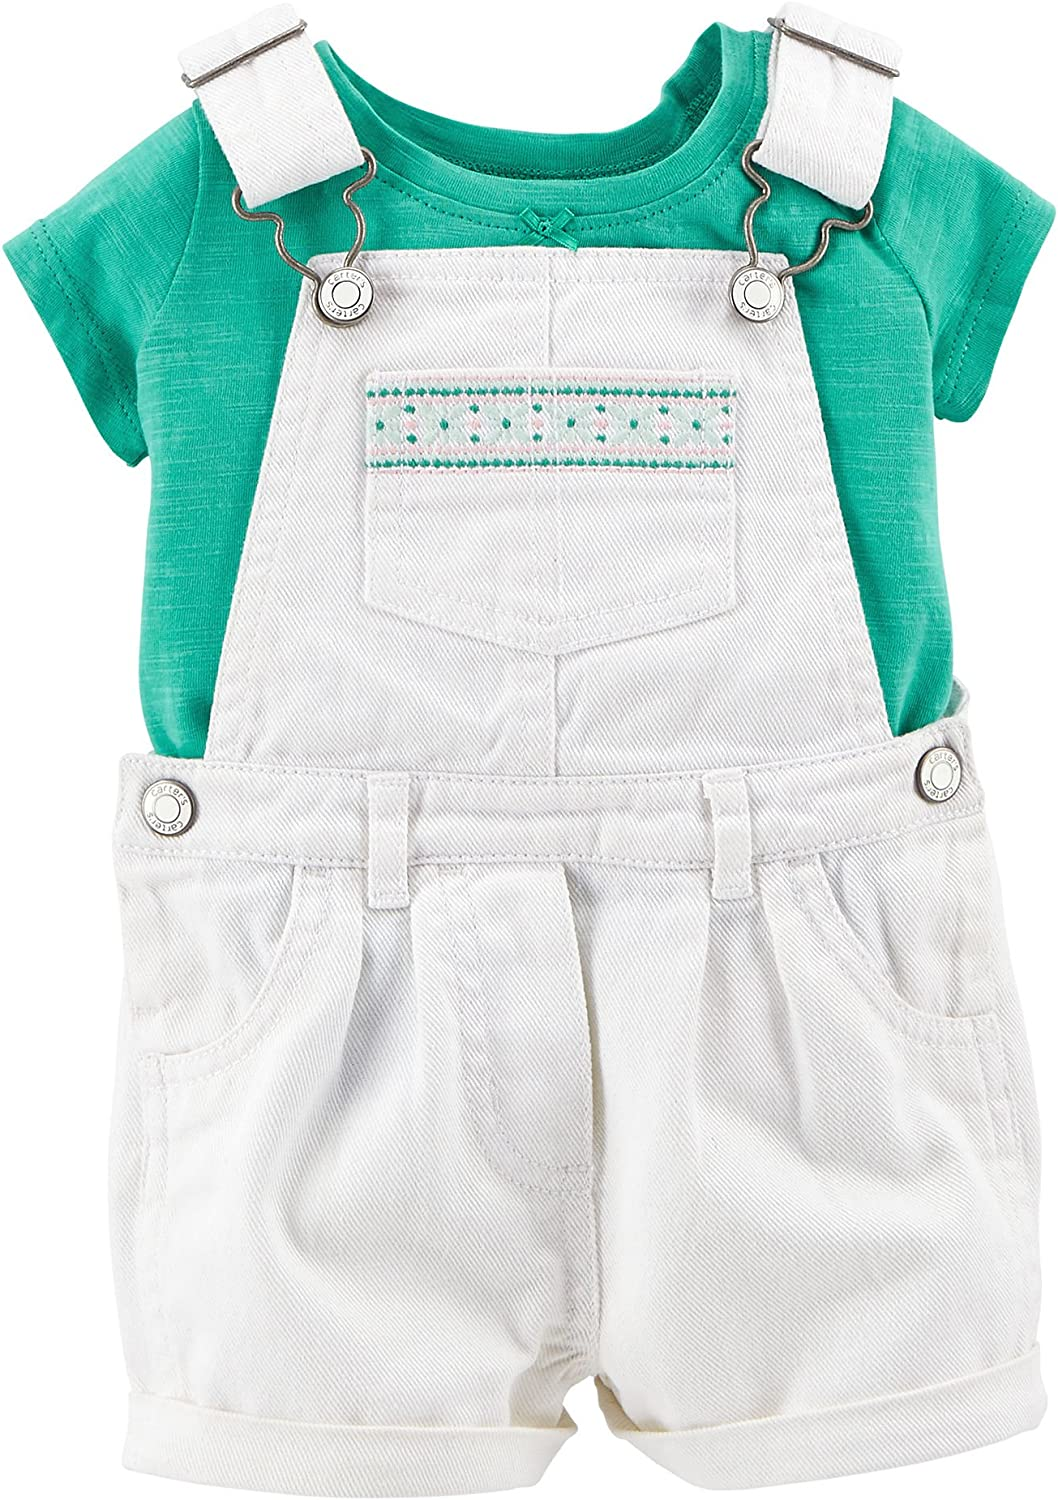 Carters Baby Girl 2-Piece Tee /& Shortalls Set